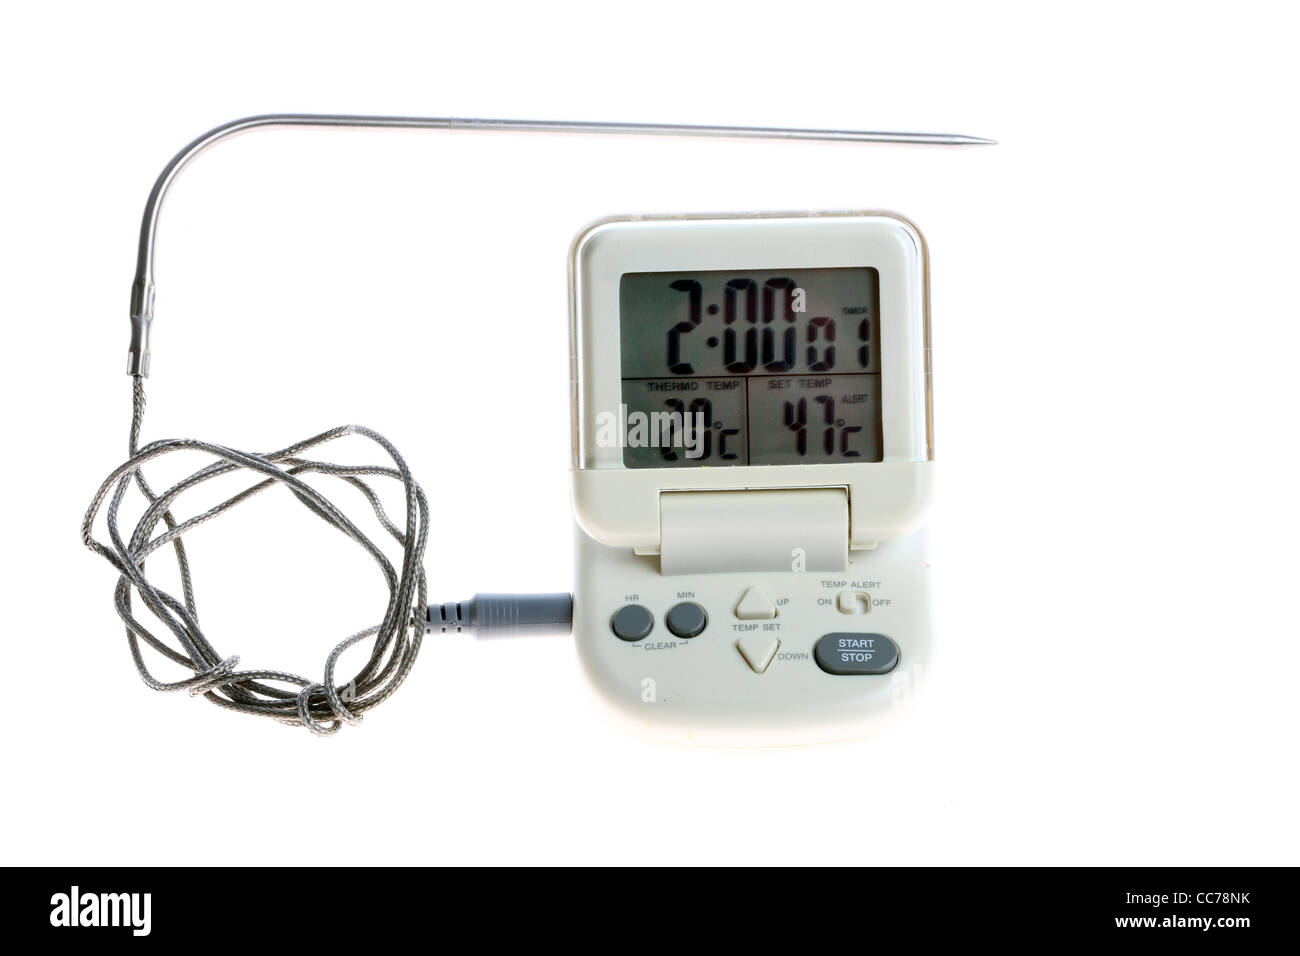 Digital frying thermometer, kitchen utensils, kitchen tools. - Stock Image